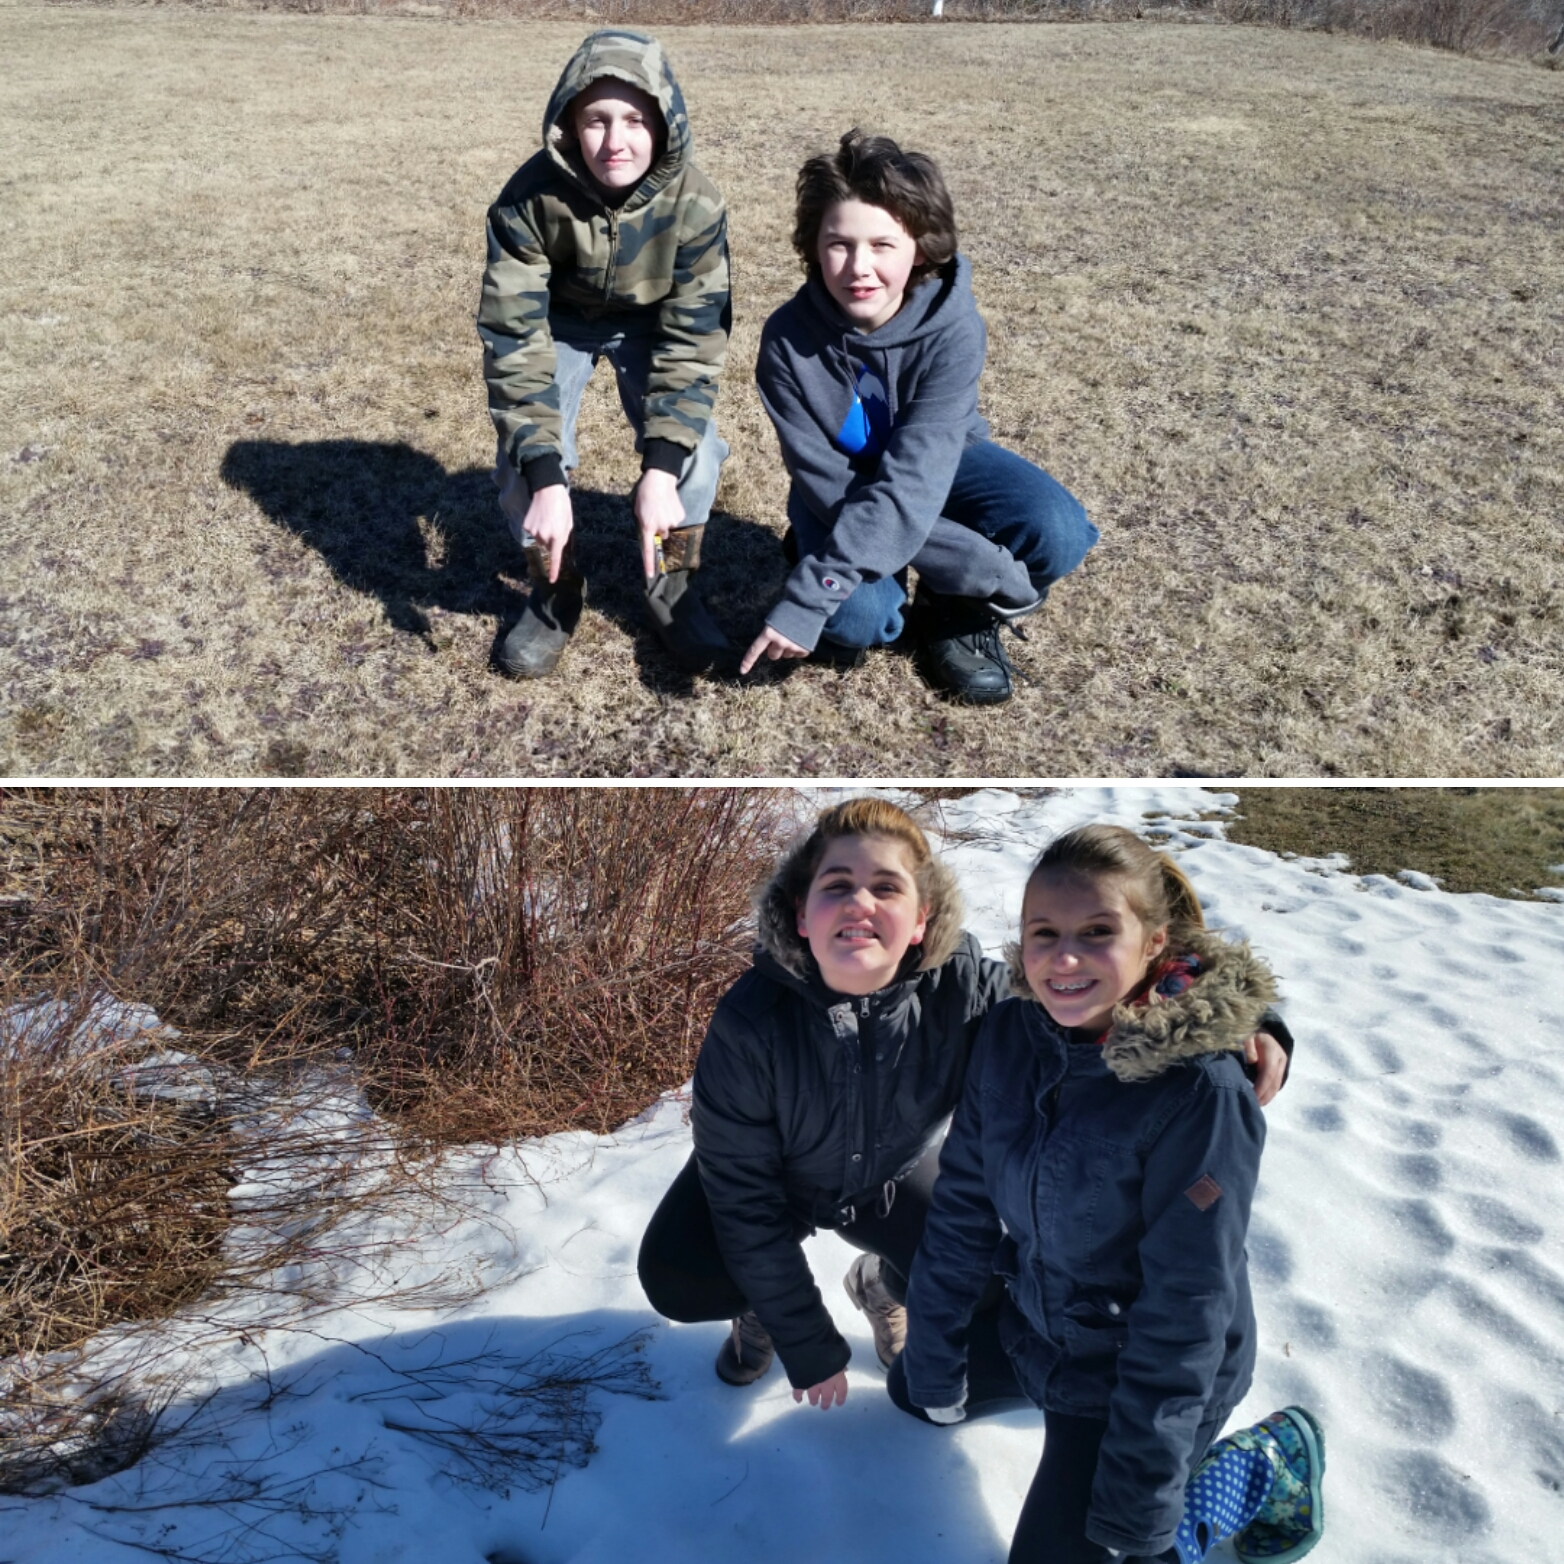 More discoveries of deer tracks and scat!